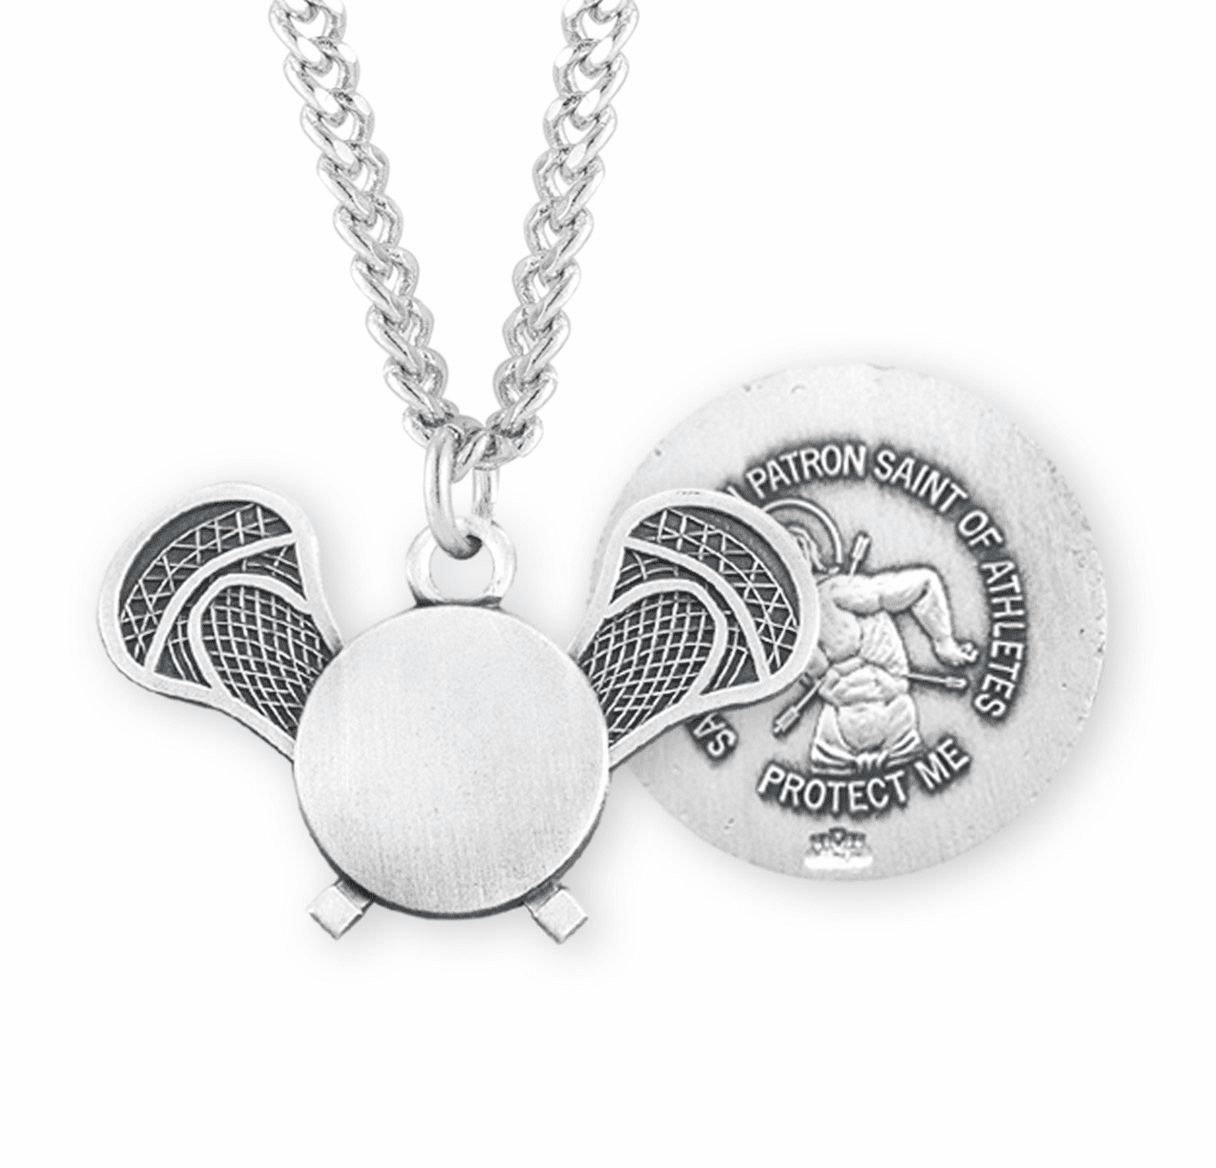 Lacrosse St Sebastian Sports Sterling Silver Necklace by HMH Religious